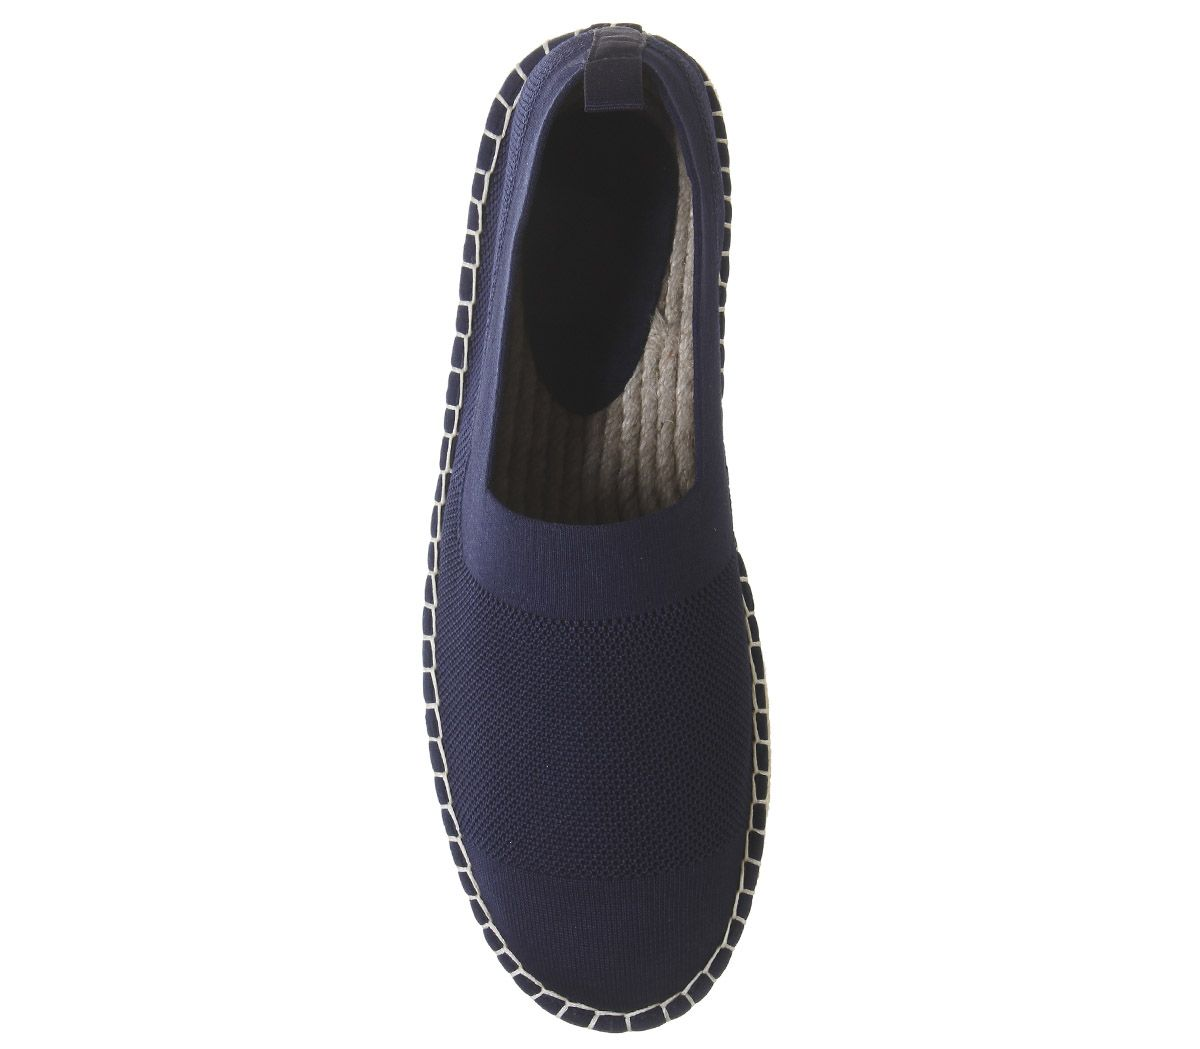 Mens-Office-Lombok-Knit-Espadrilles-Navy-Casual-Shoes thumbnail 5